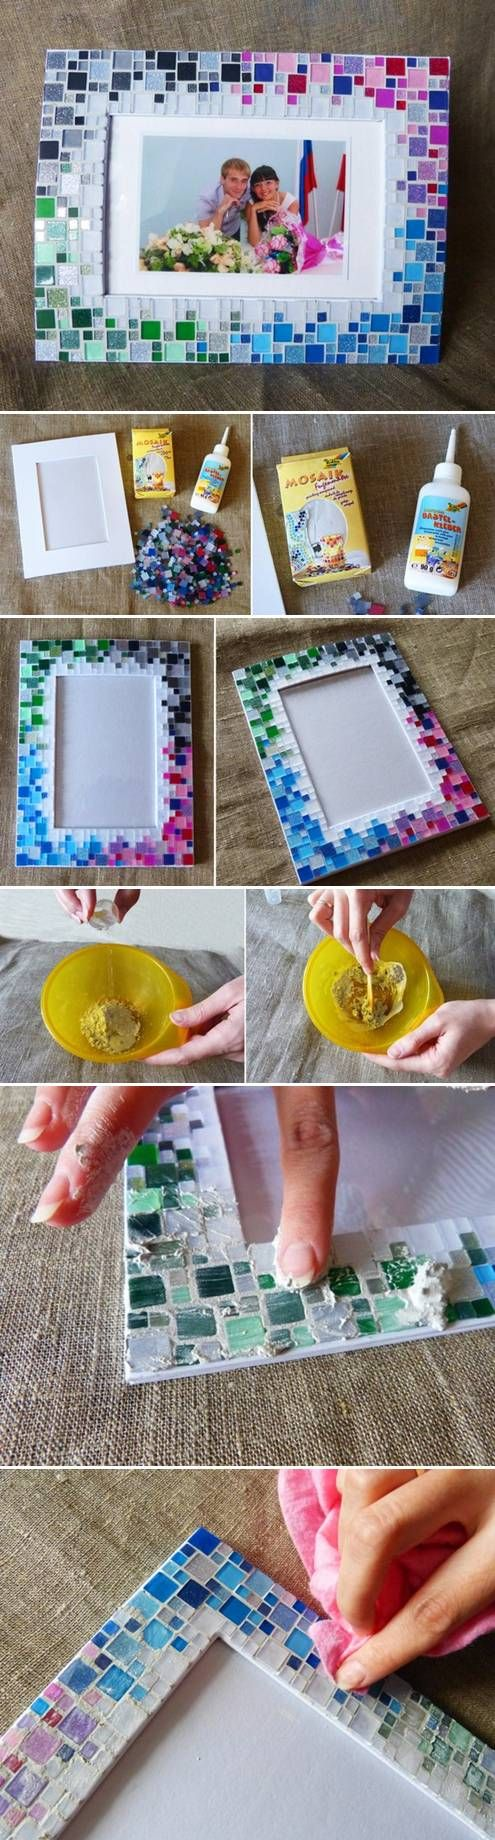 Diy Picture Frame Ideas Thinking Outside The Box The Saw Guy